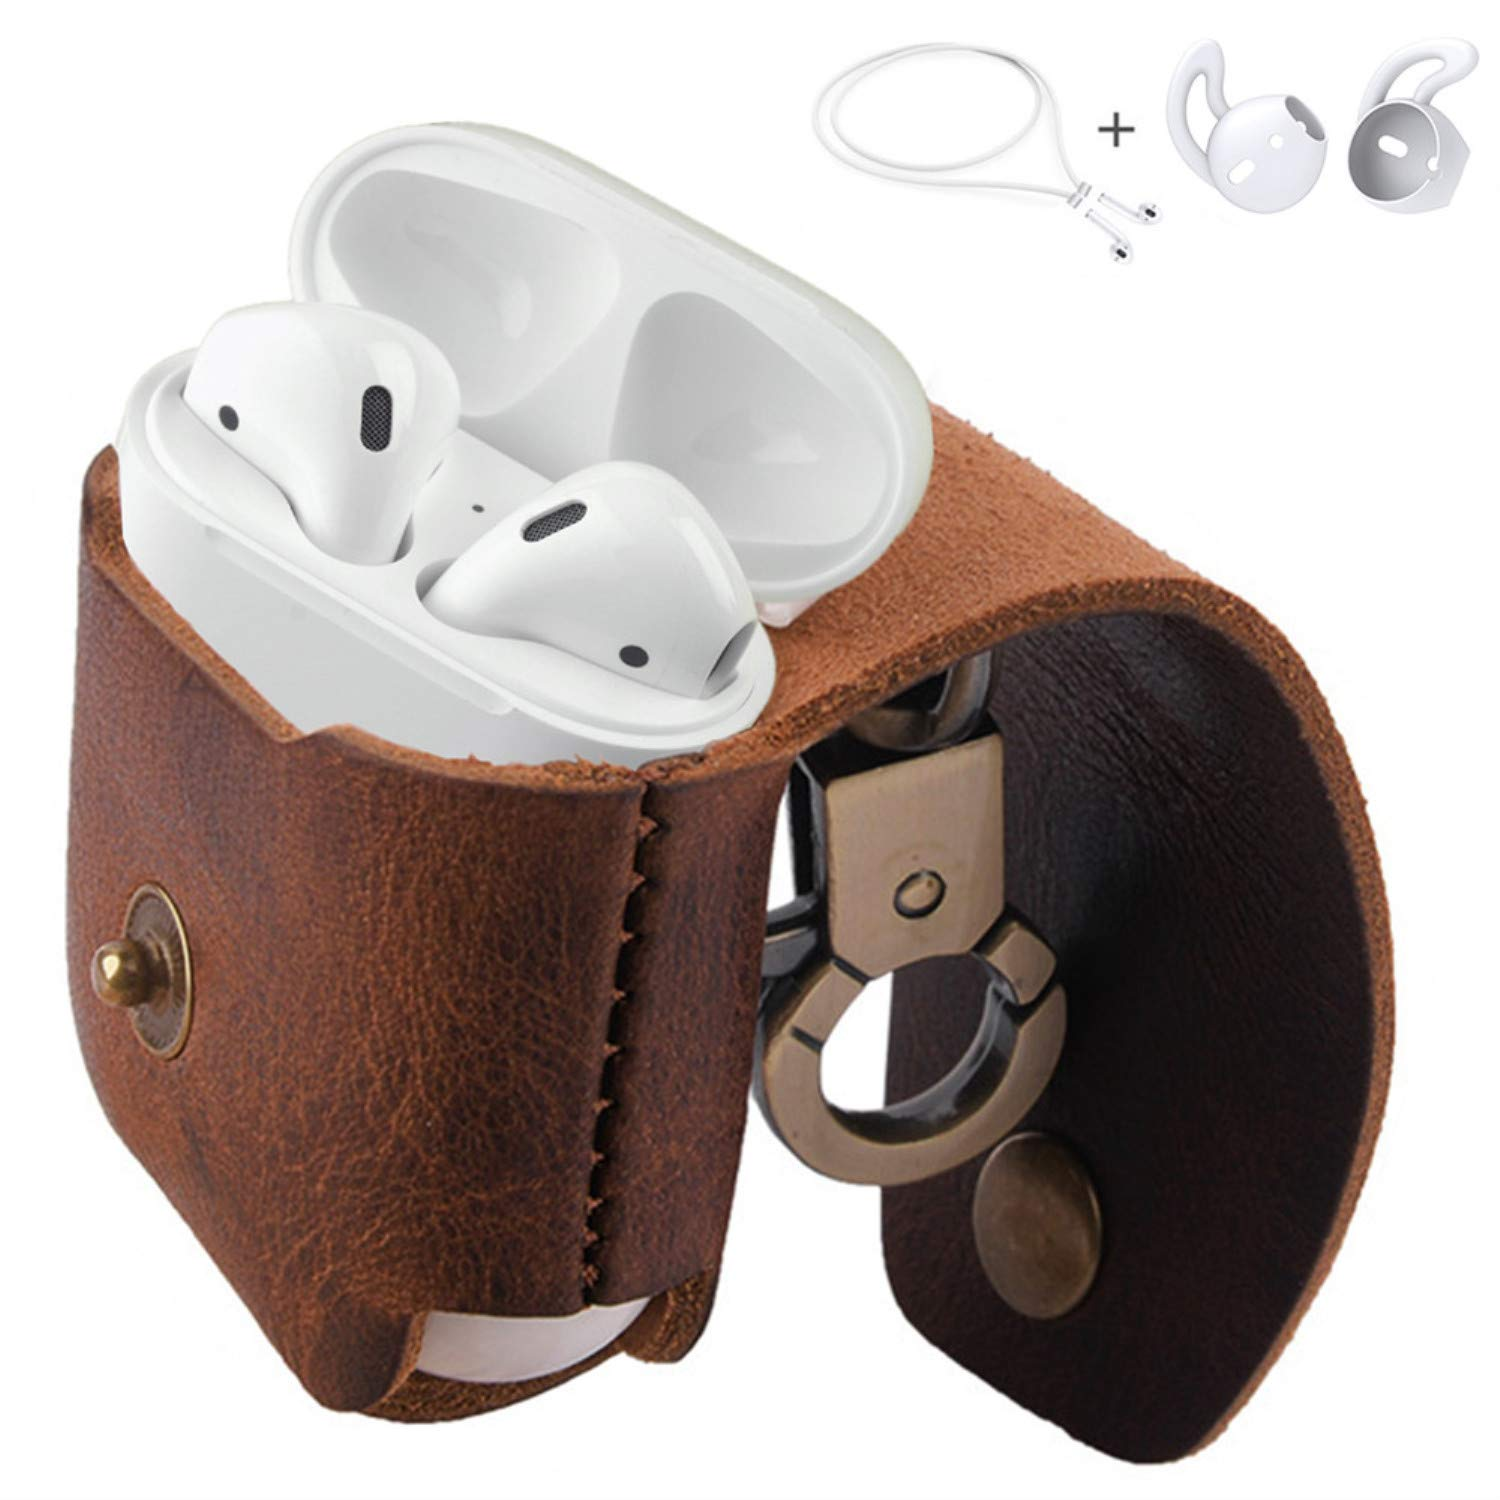 separation shoes 81375 c7e5b MRPLUM AirPods Leather Case Ear Hooks Genuine Leather Portable Protective  Cover Skin with Metal Clasp Compatible with Apple AirPods 1 Charging Case  ...